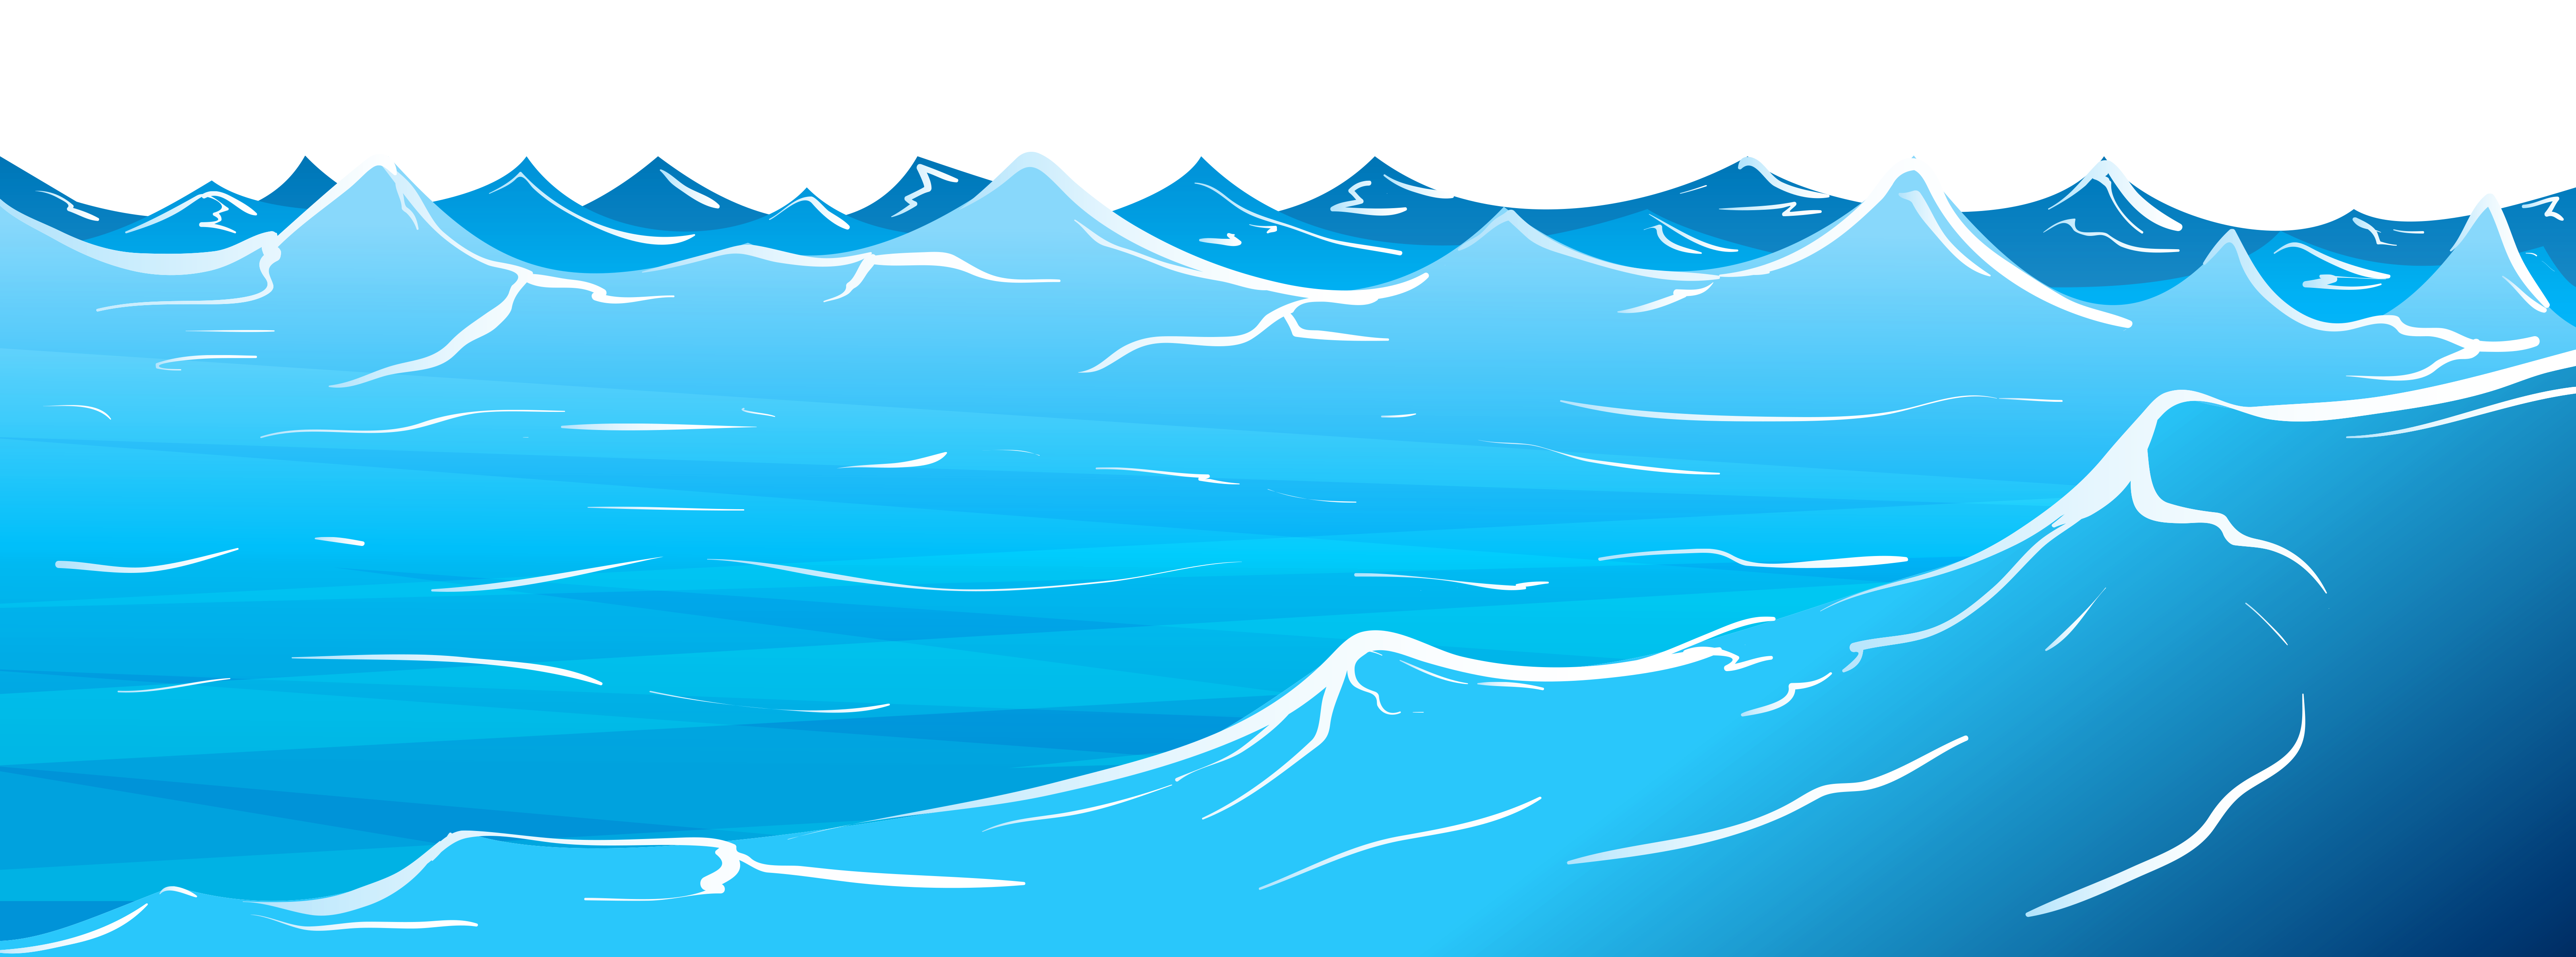 1846 Wave free clipart.